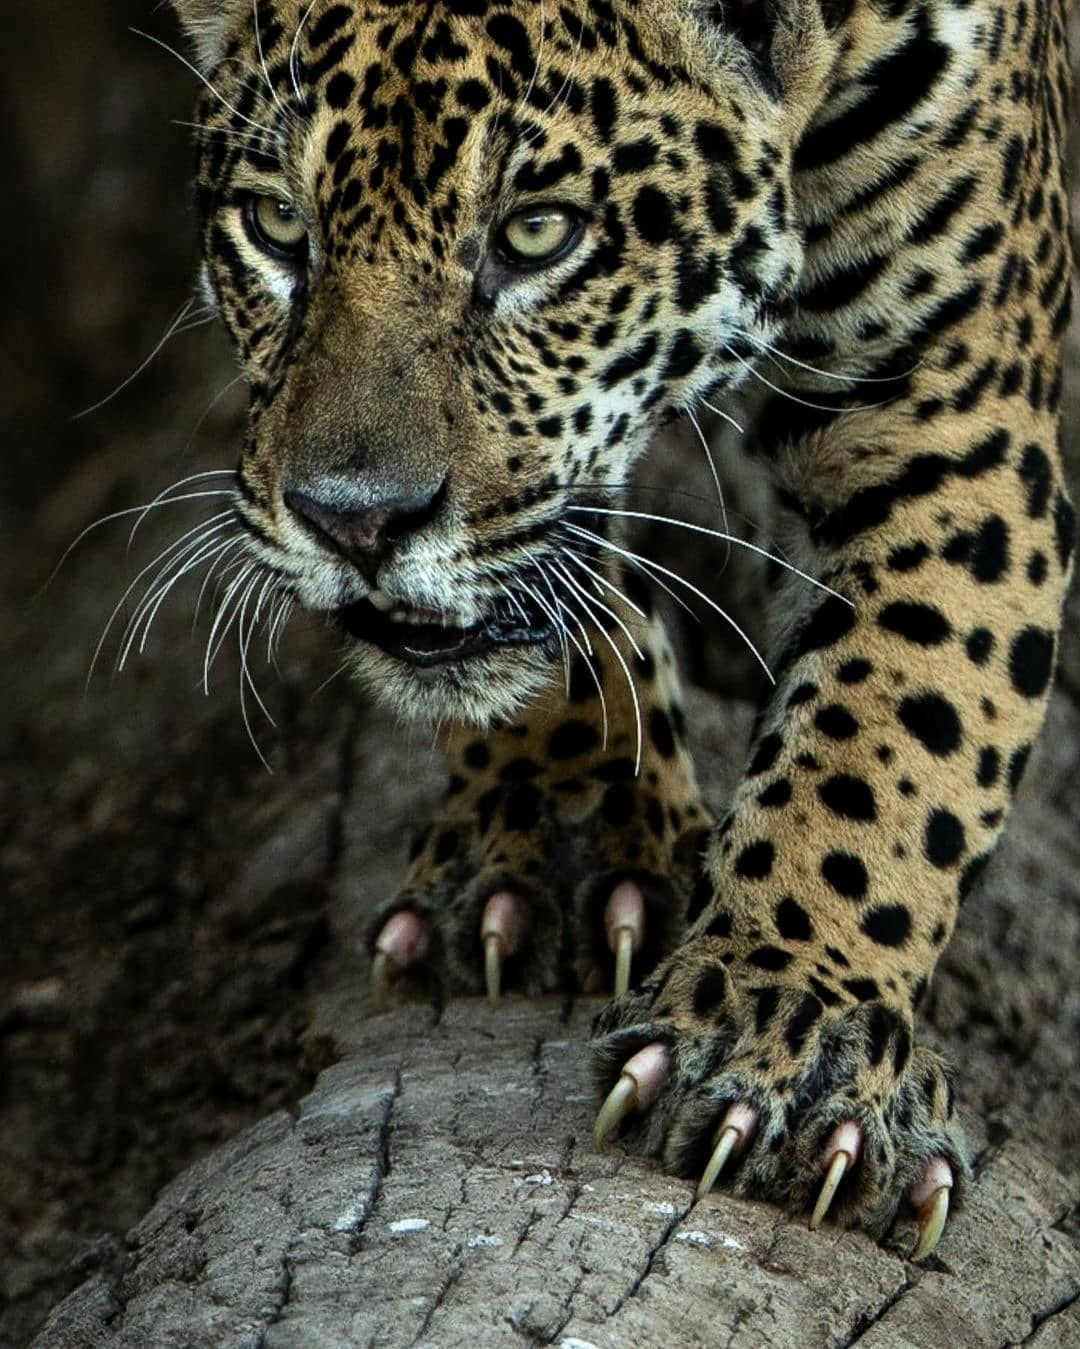 Nature Is Metal On Instagram Knives Out By Marlondutoit The King Of The Jungle Showing Off The Hardware Jaguar Are The 3rd Lar In 2021 Animals Big Cats Jaguar